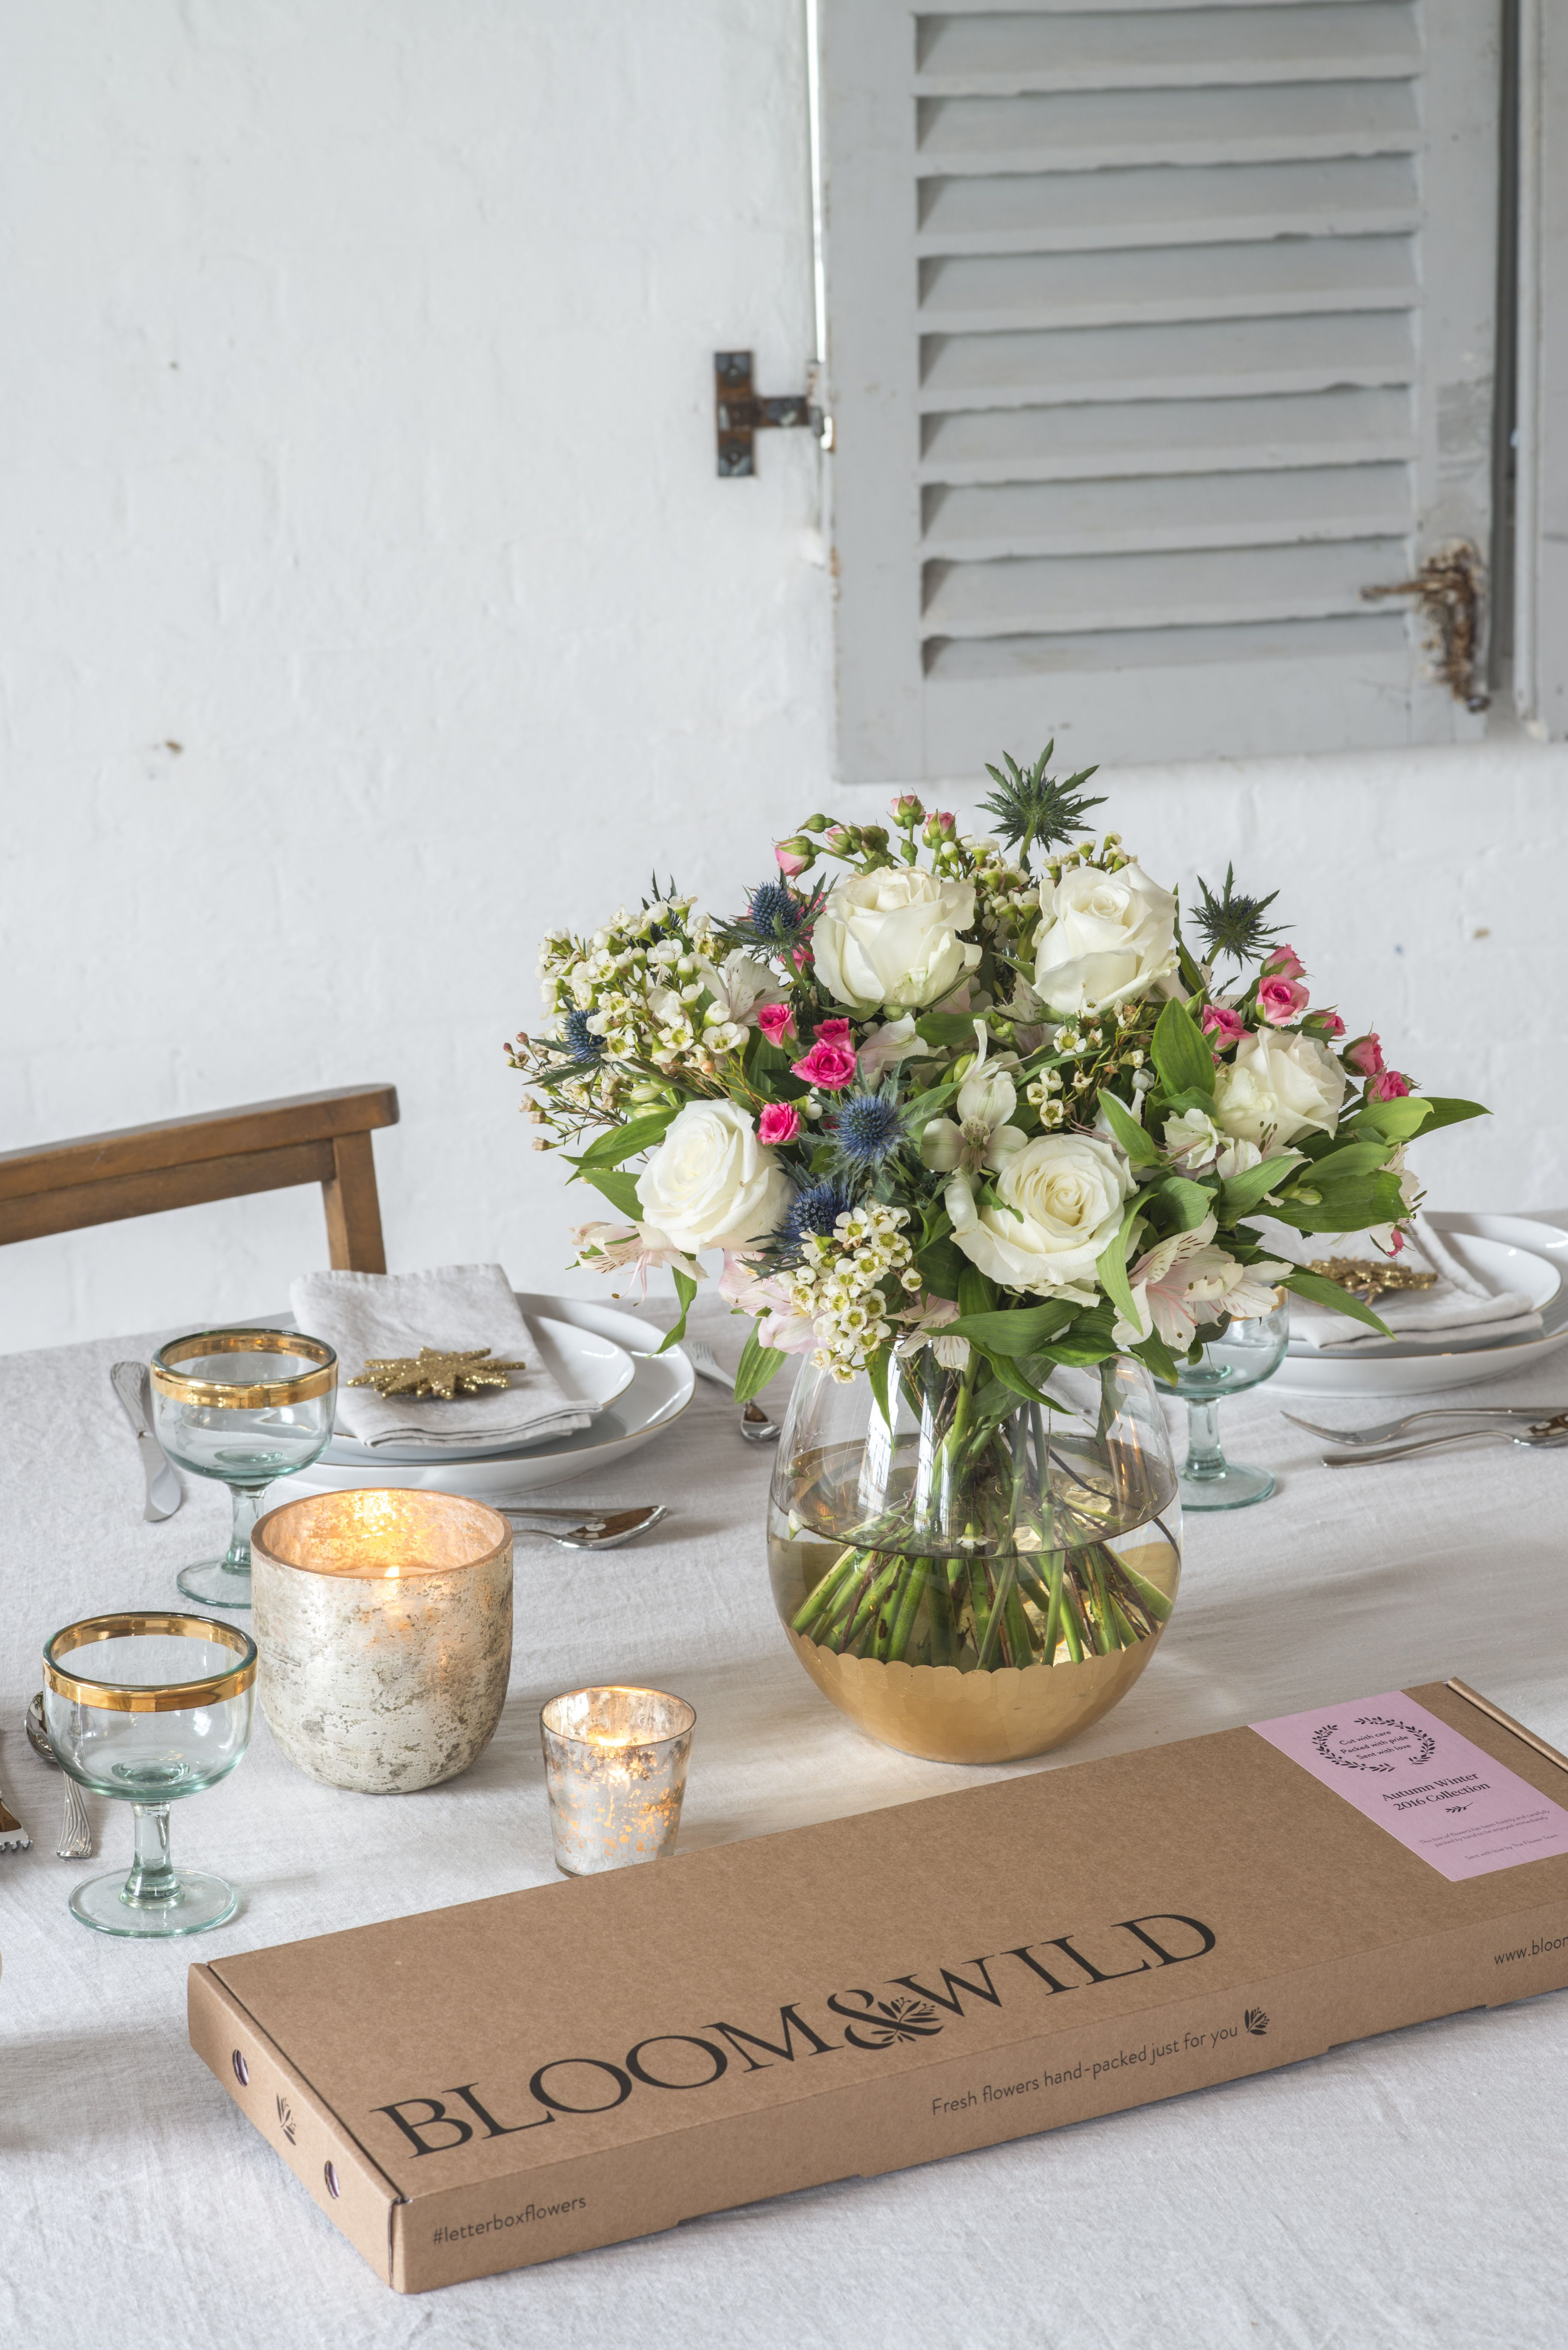 Decorating your dinner table with beautiful fresh flowers at decorating your dinner table with beautiful fresh flowers at christmas can make it feel extra special izmirmasajfo